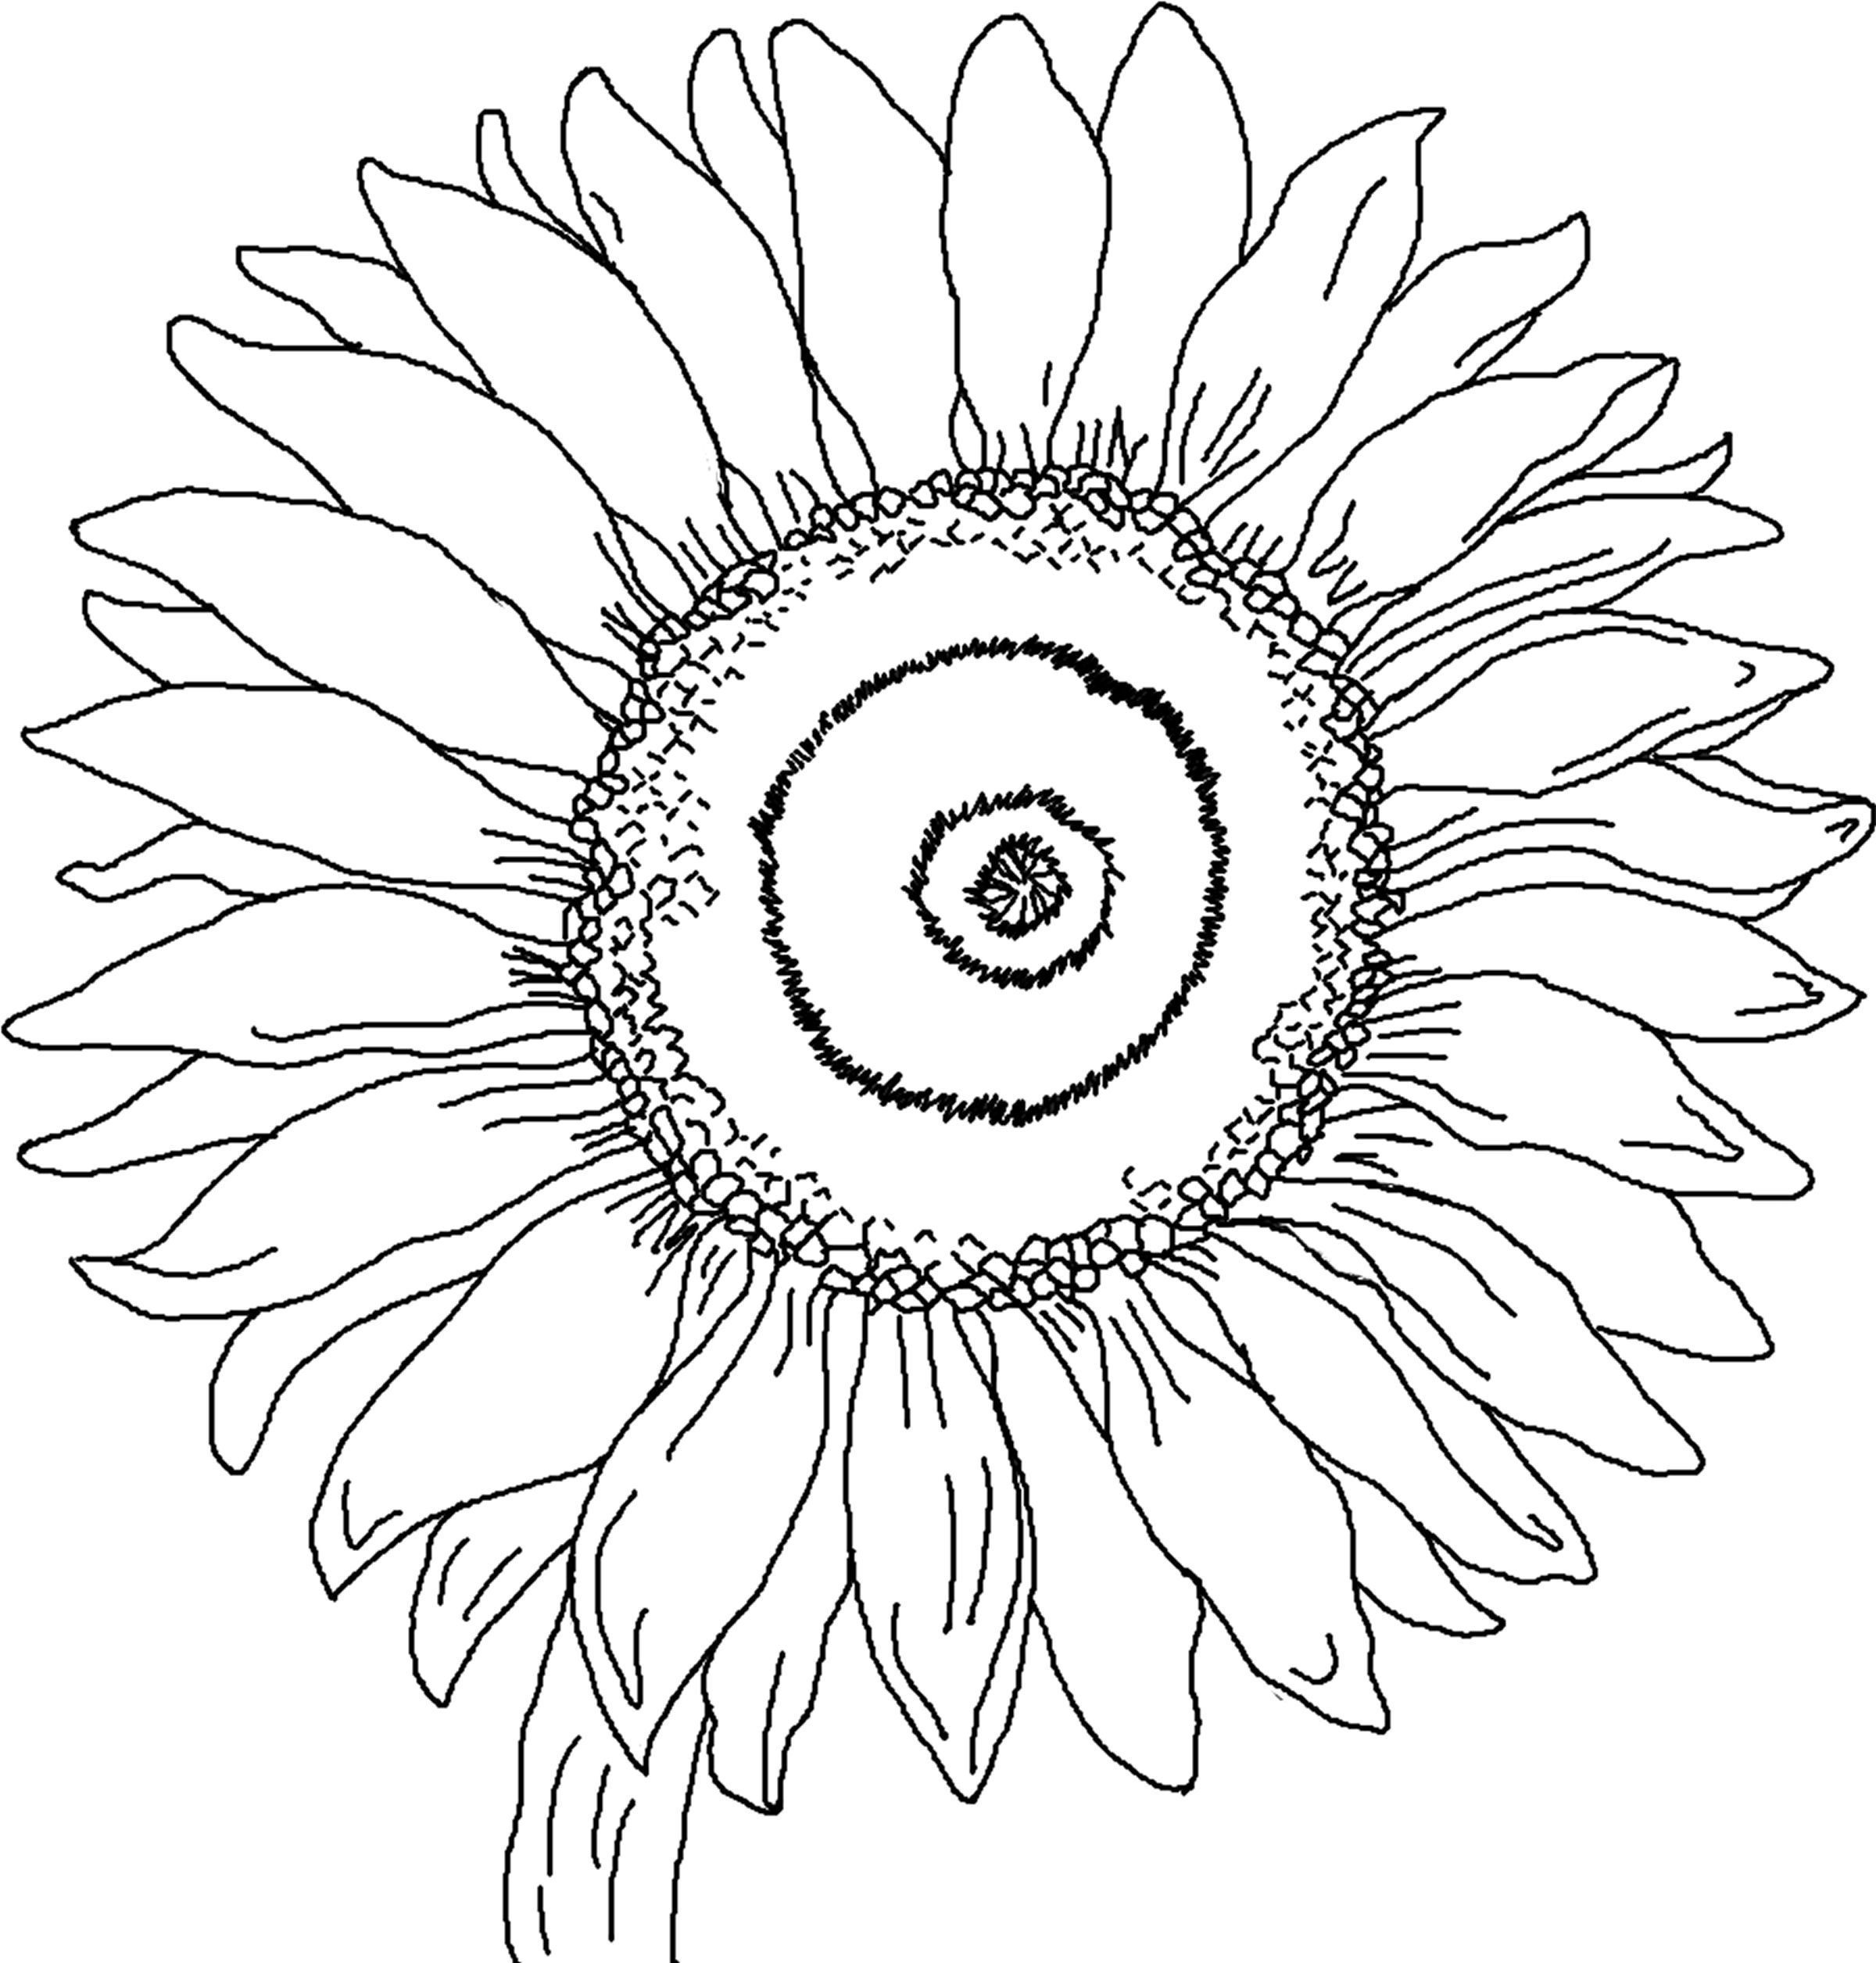 free printable flowers to color free printable sunflower coloring pages for kids flowers color to printable free